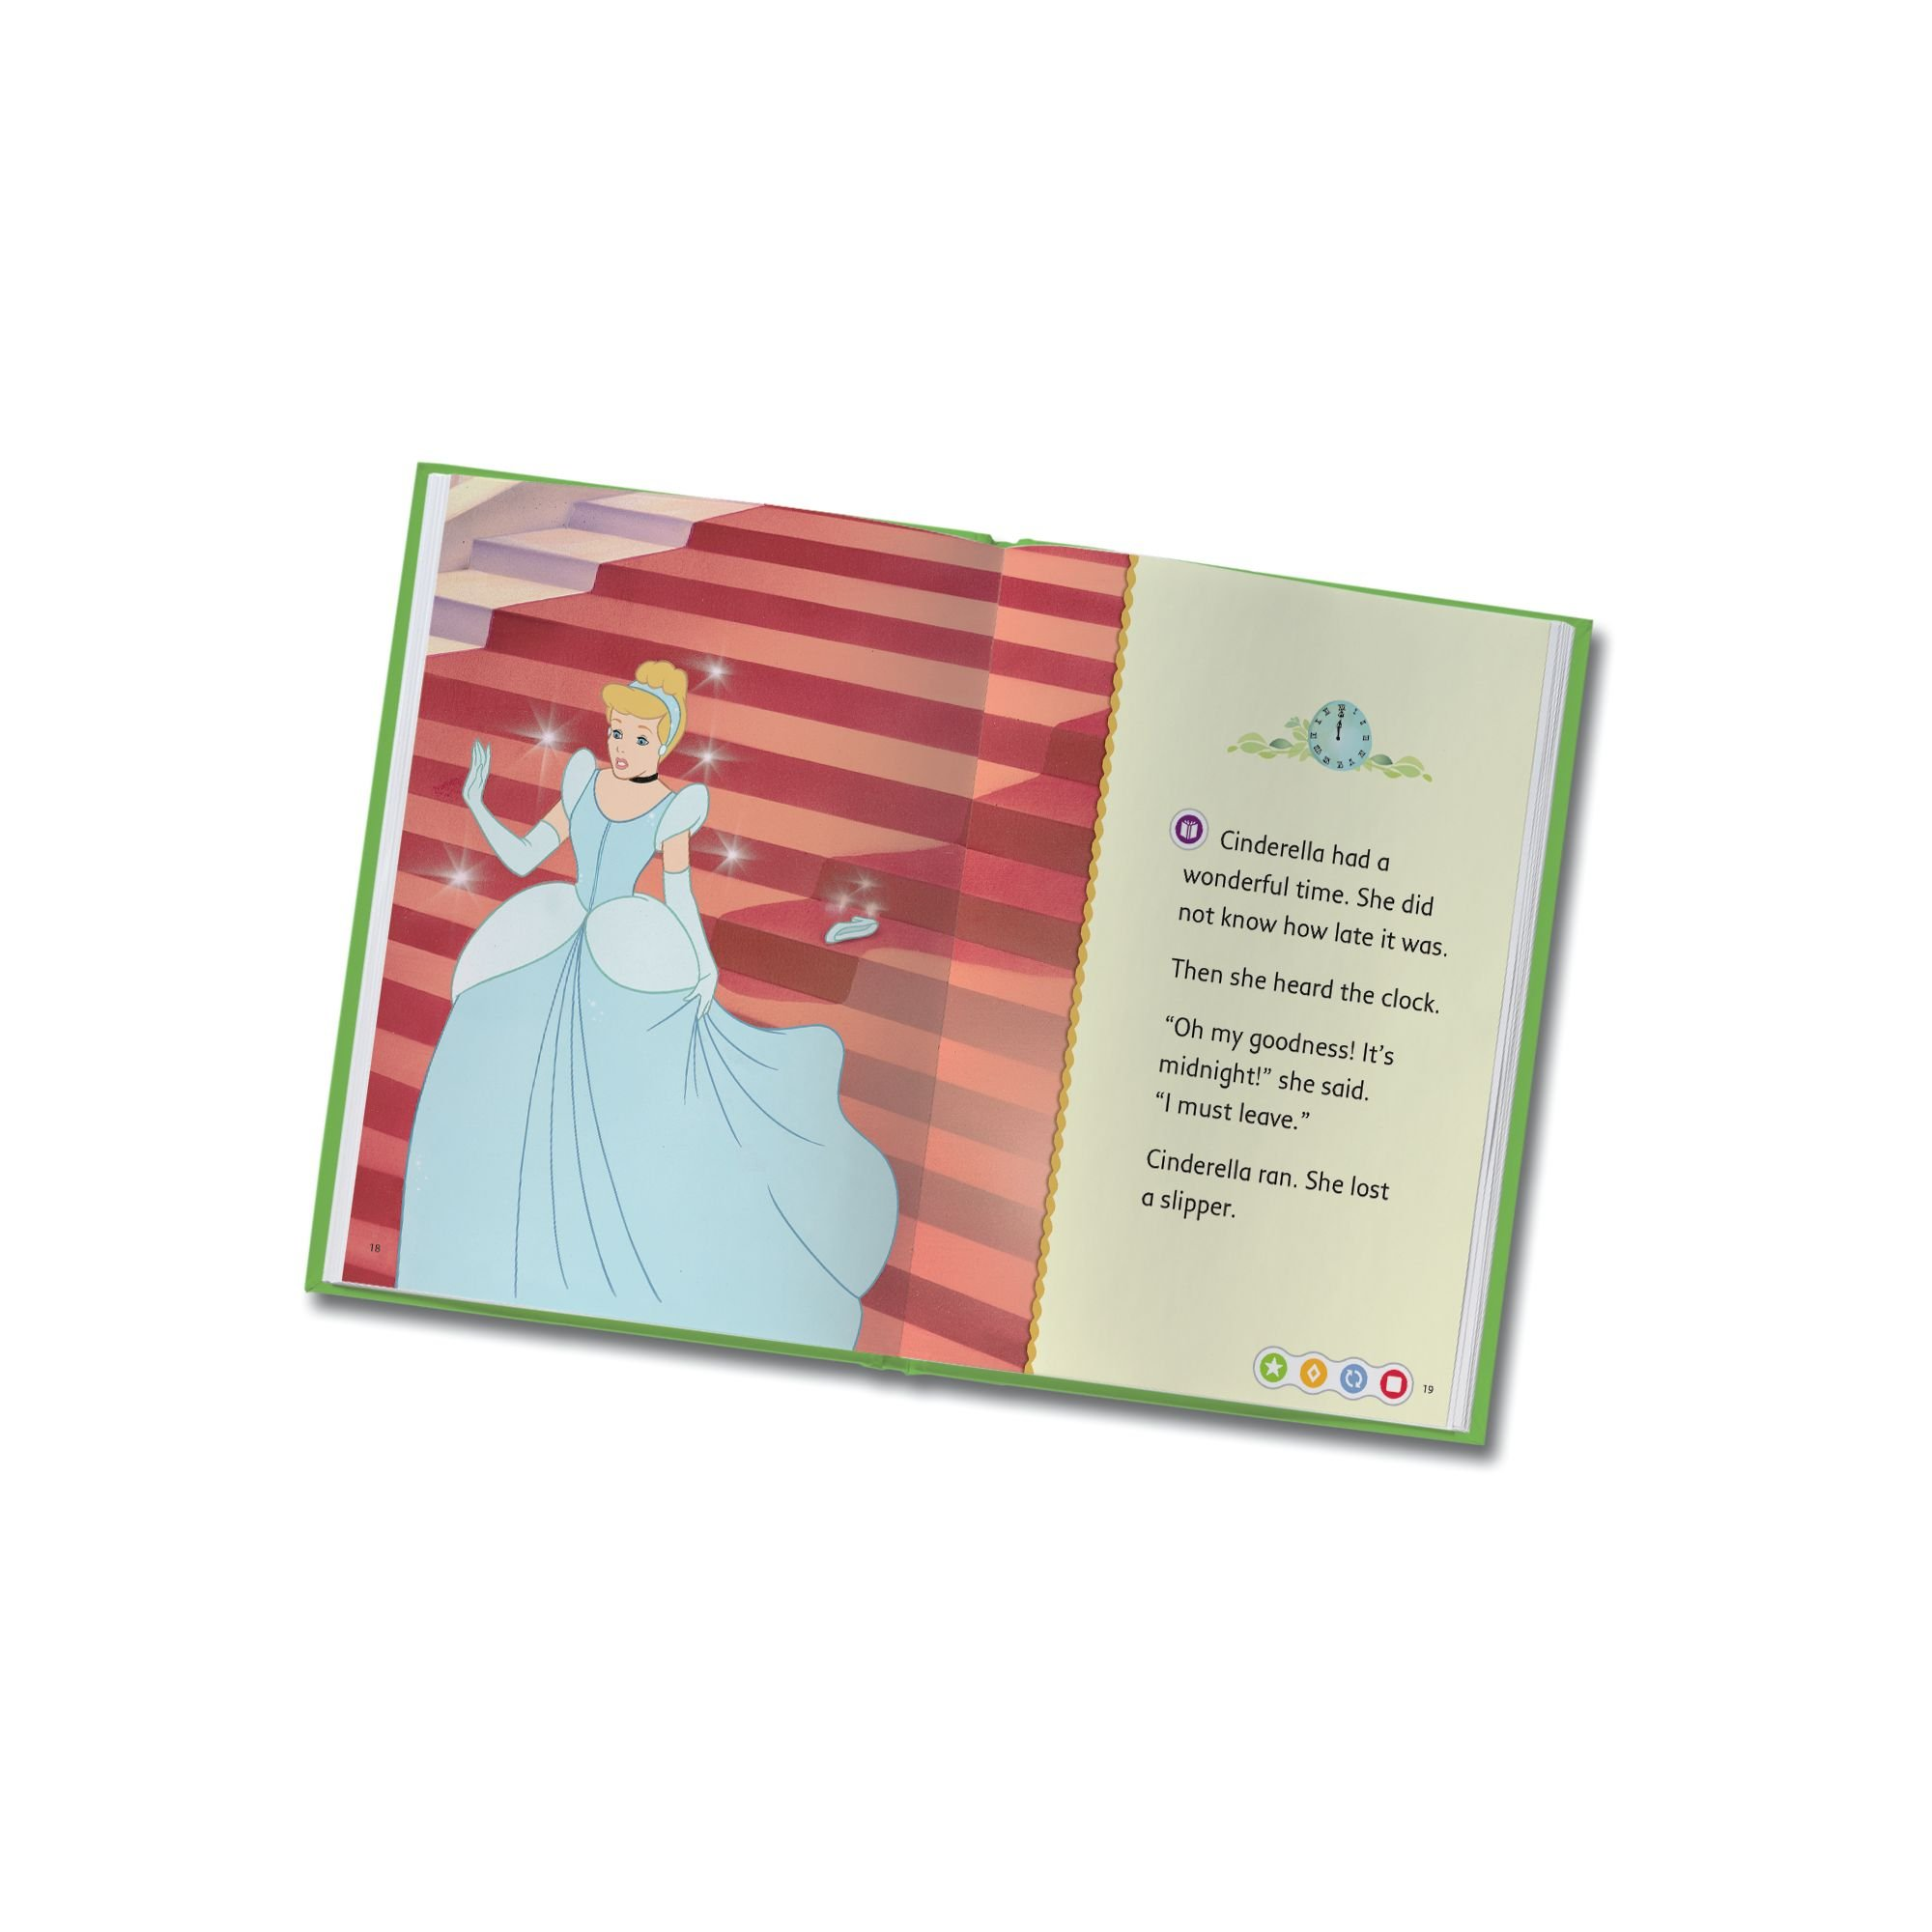 LeapFrog LeapReader Book: Disney Cinderella: The Heart That Believes (works with Tag) by LeapFrog (Image #7)